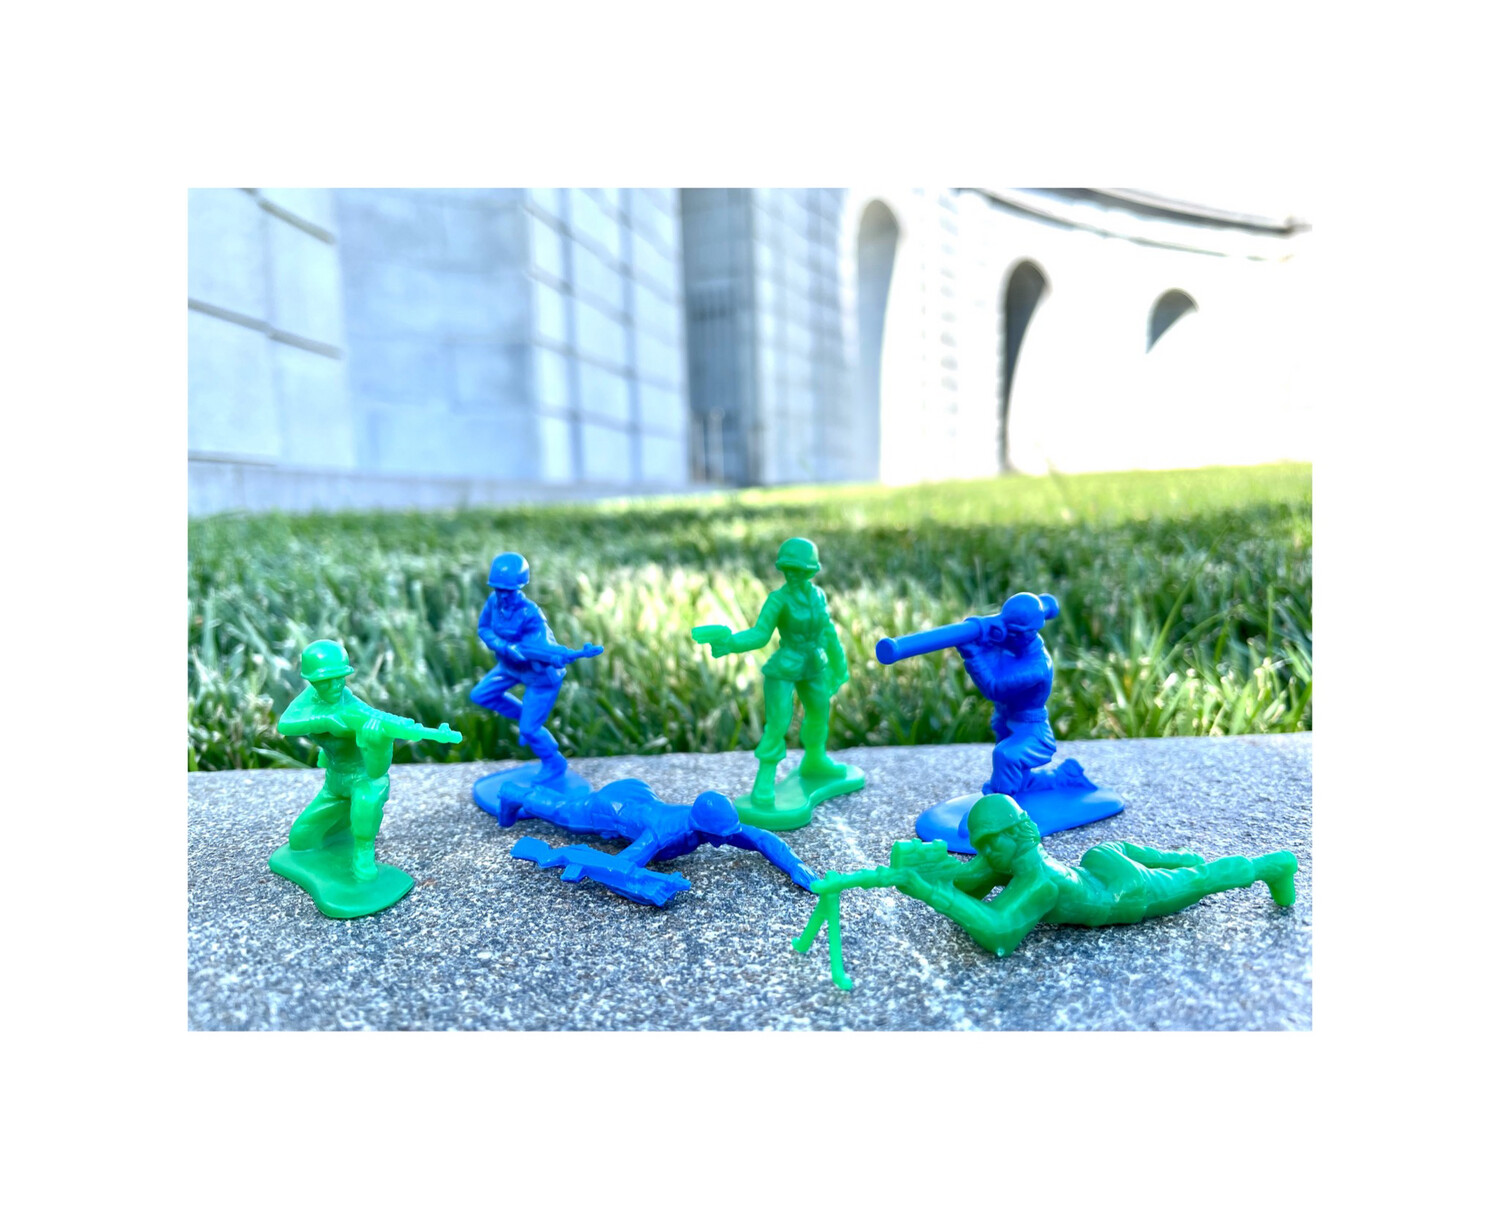 Blue and Green Women Toy Soldiers (6pc)